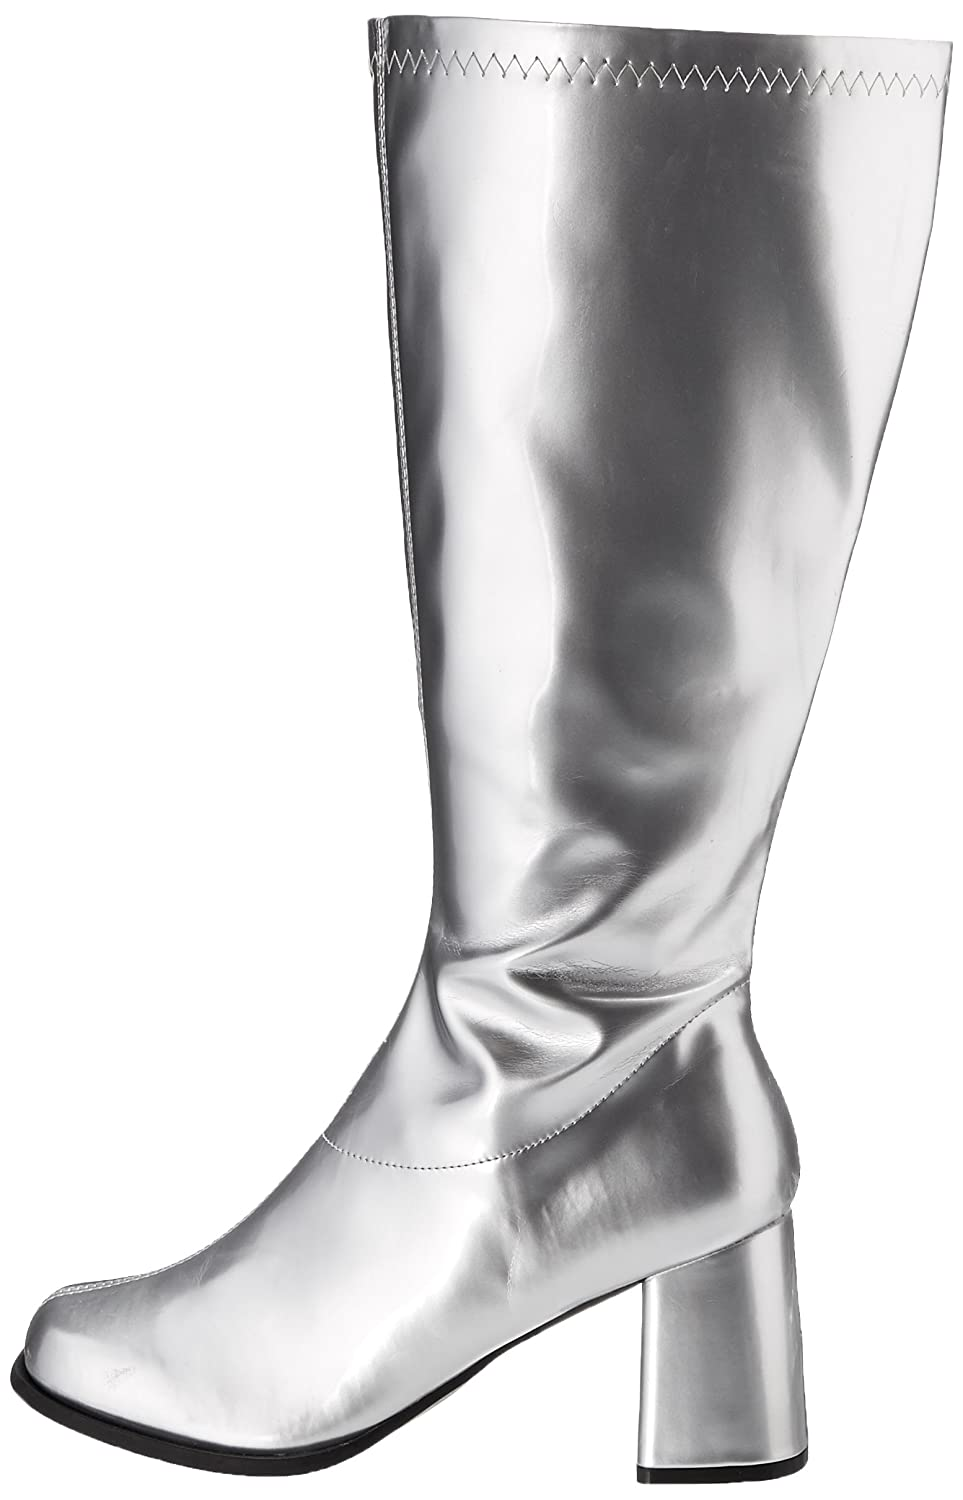 Ellie Shoes Women's Go-Go Boot B00FMWG0Z0 13|Silver